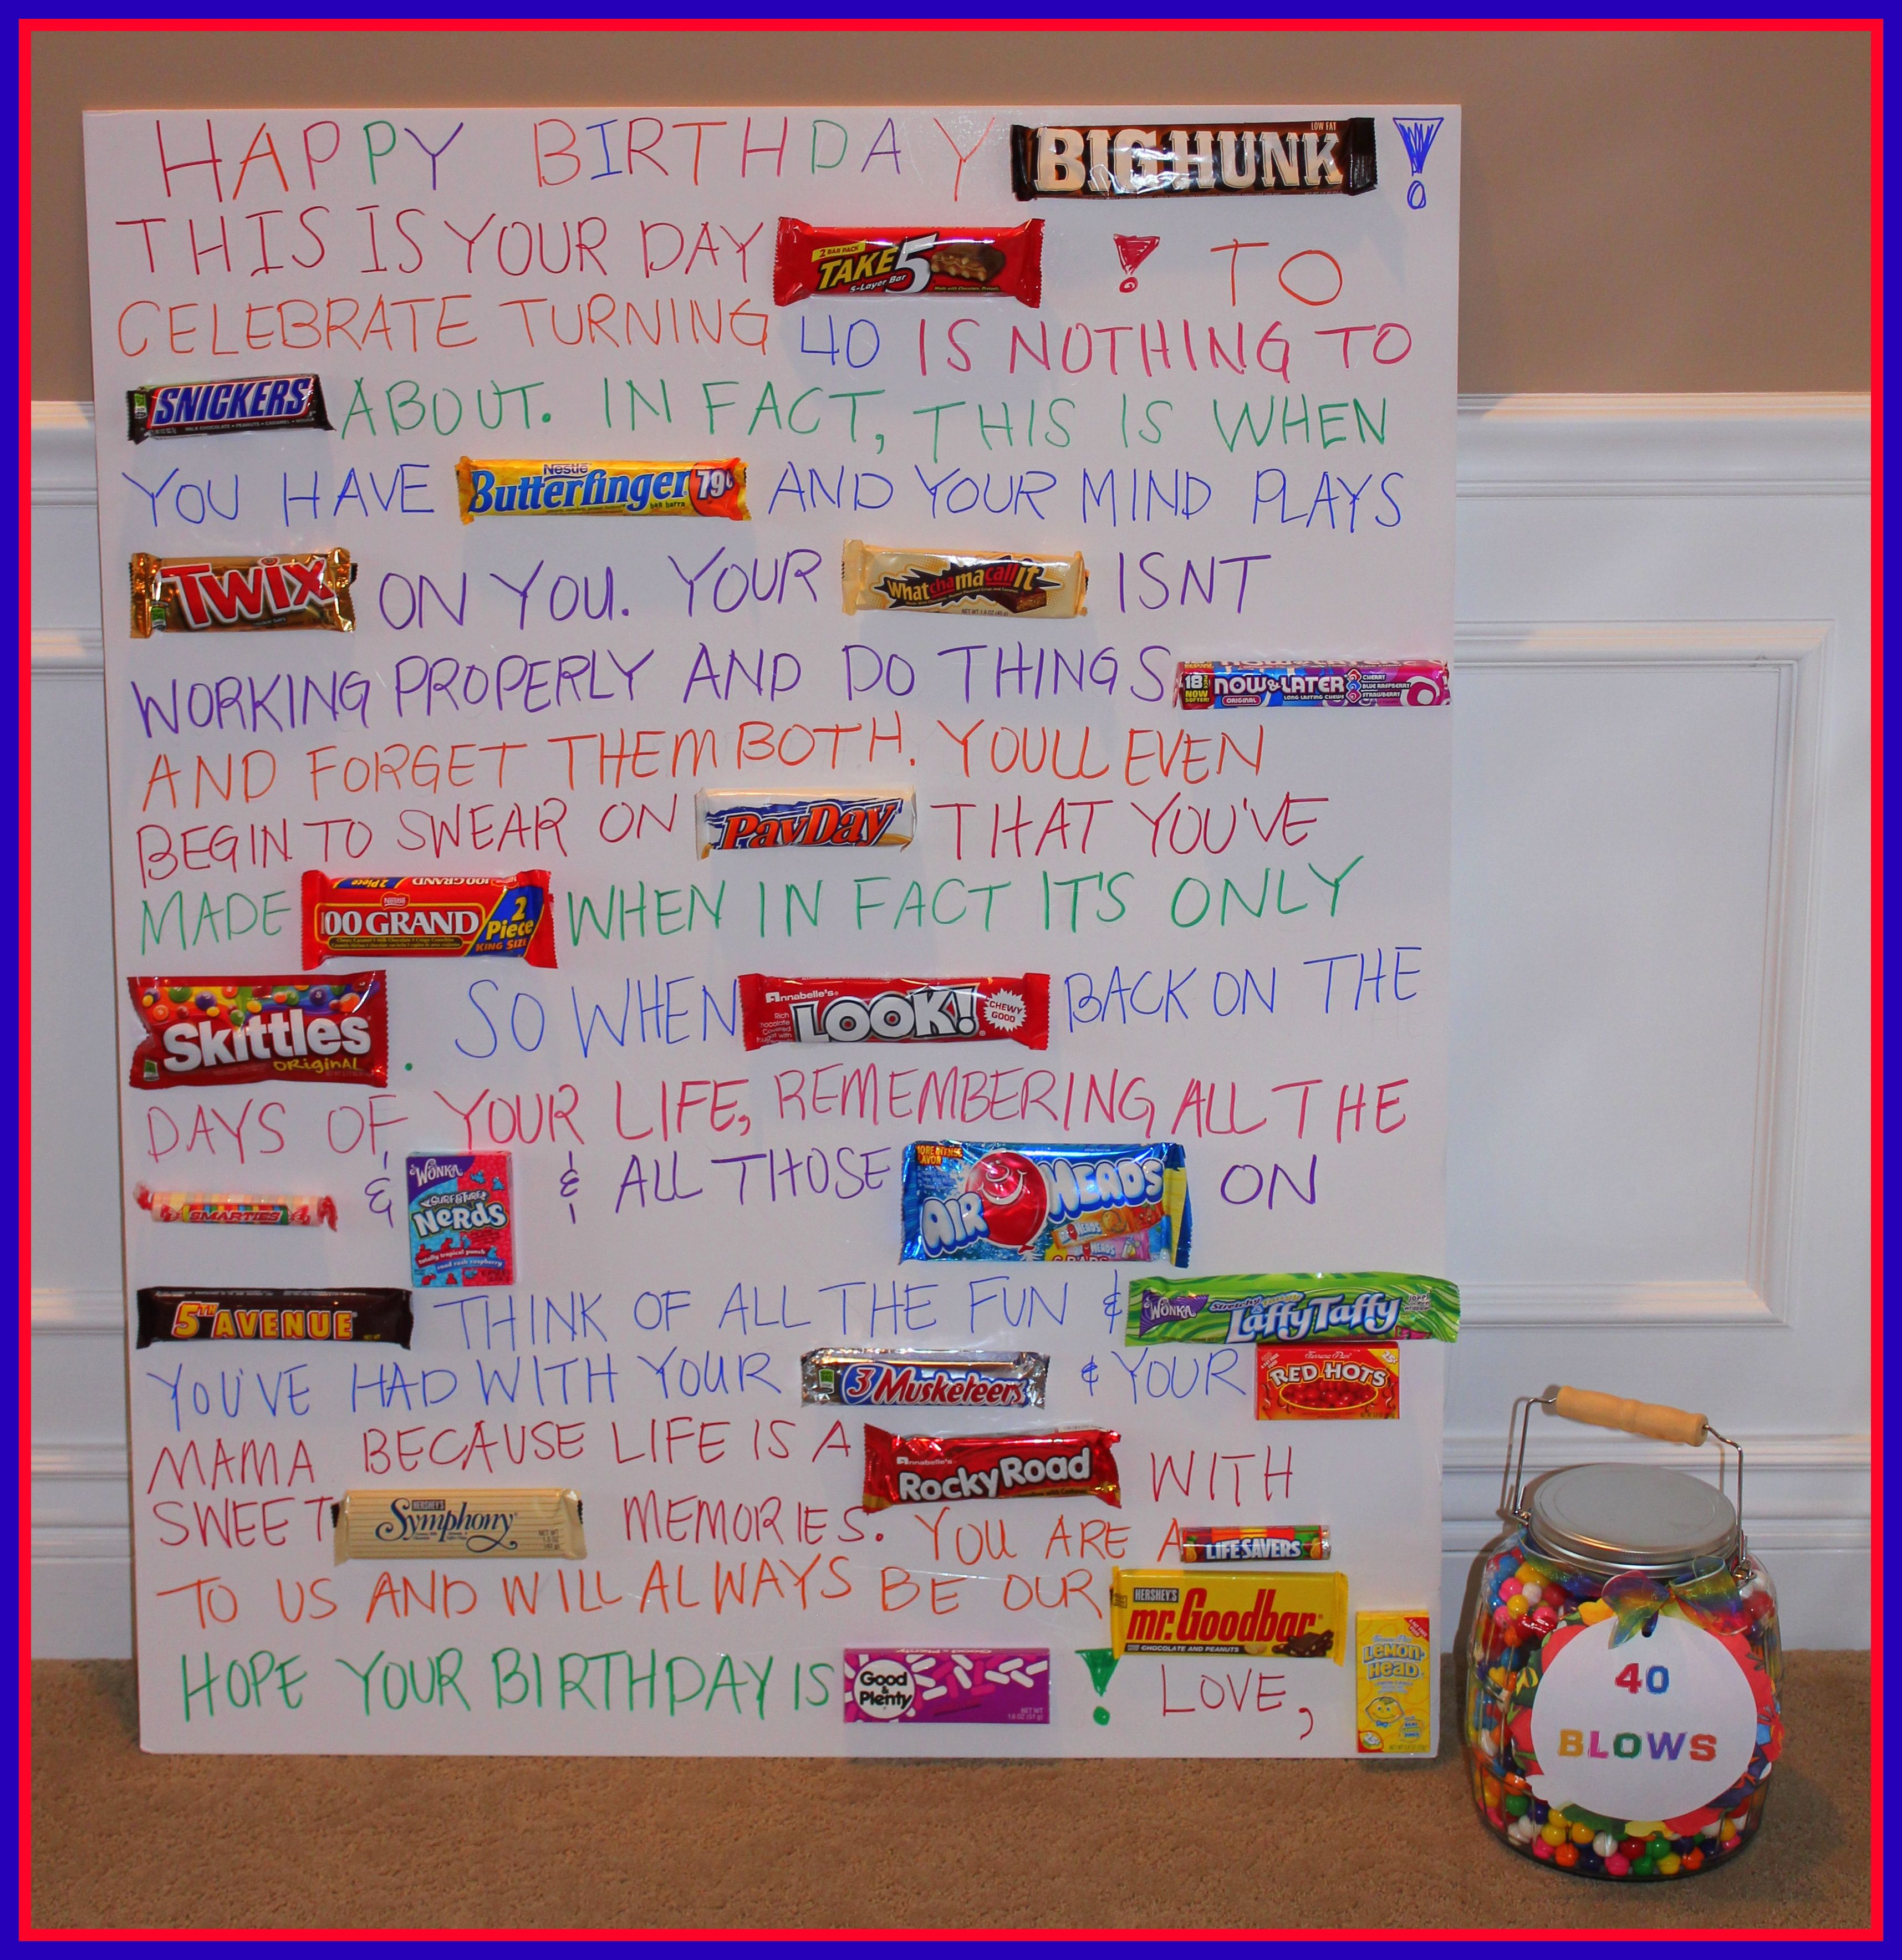 Pin By ºoº Renee Cundick ºoº On Happy Birthday To You Candy Poster Candy Poems 40th Birthday Gifts